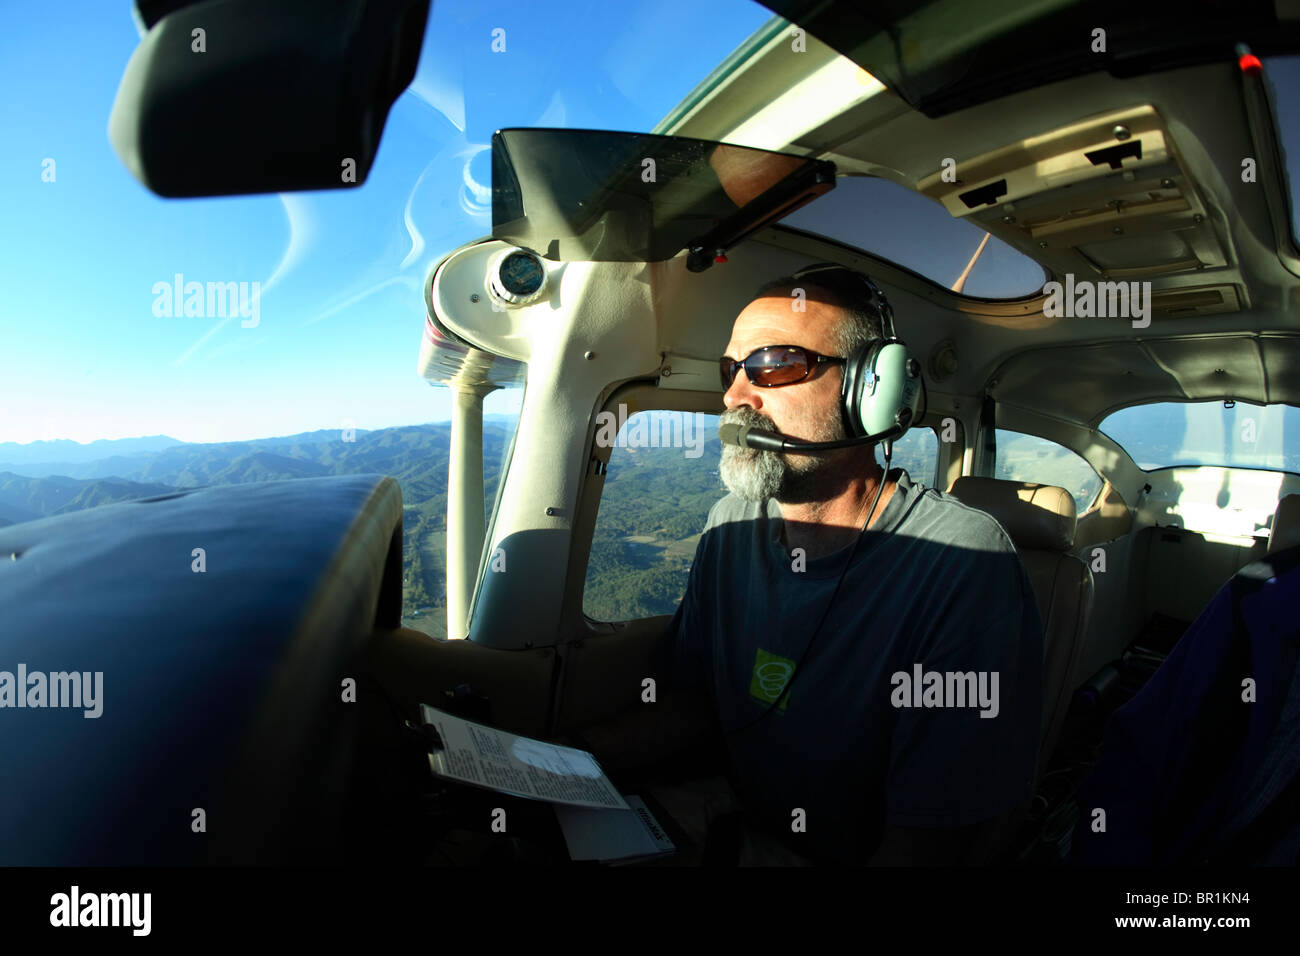 Male pilot at the controls of a Cessna 182 above the Appalachian Mountains near Asheville, NC - Stock Image